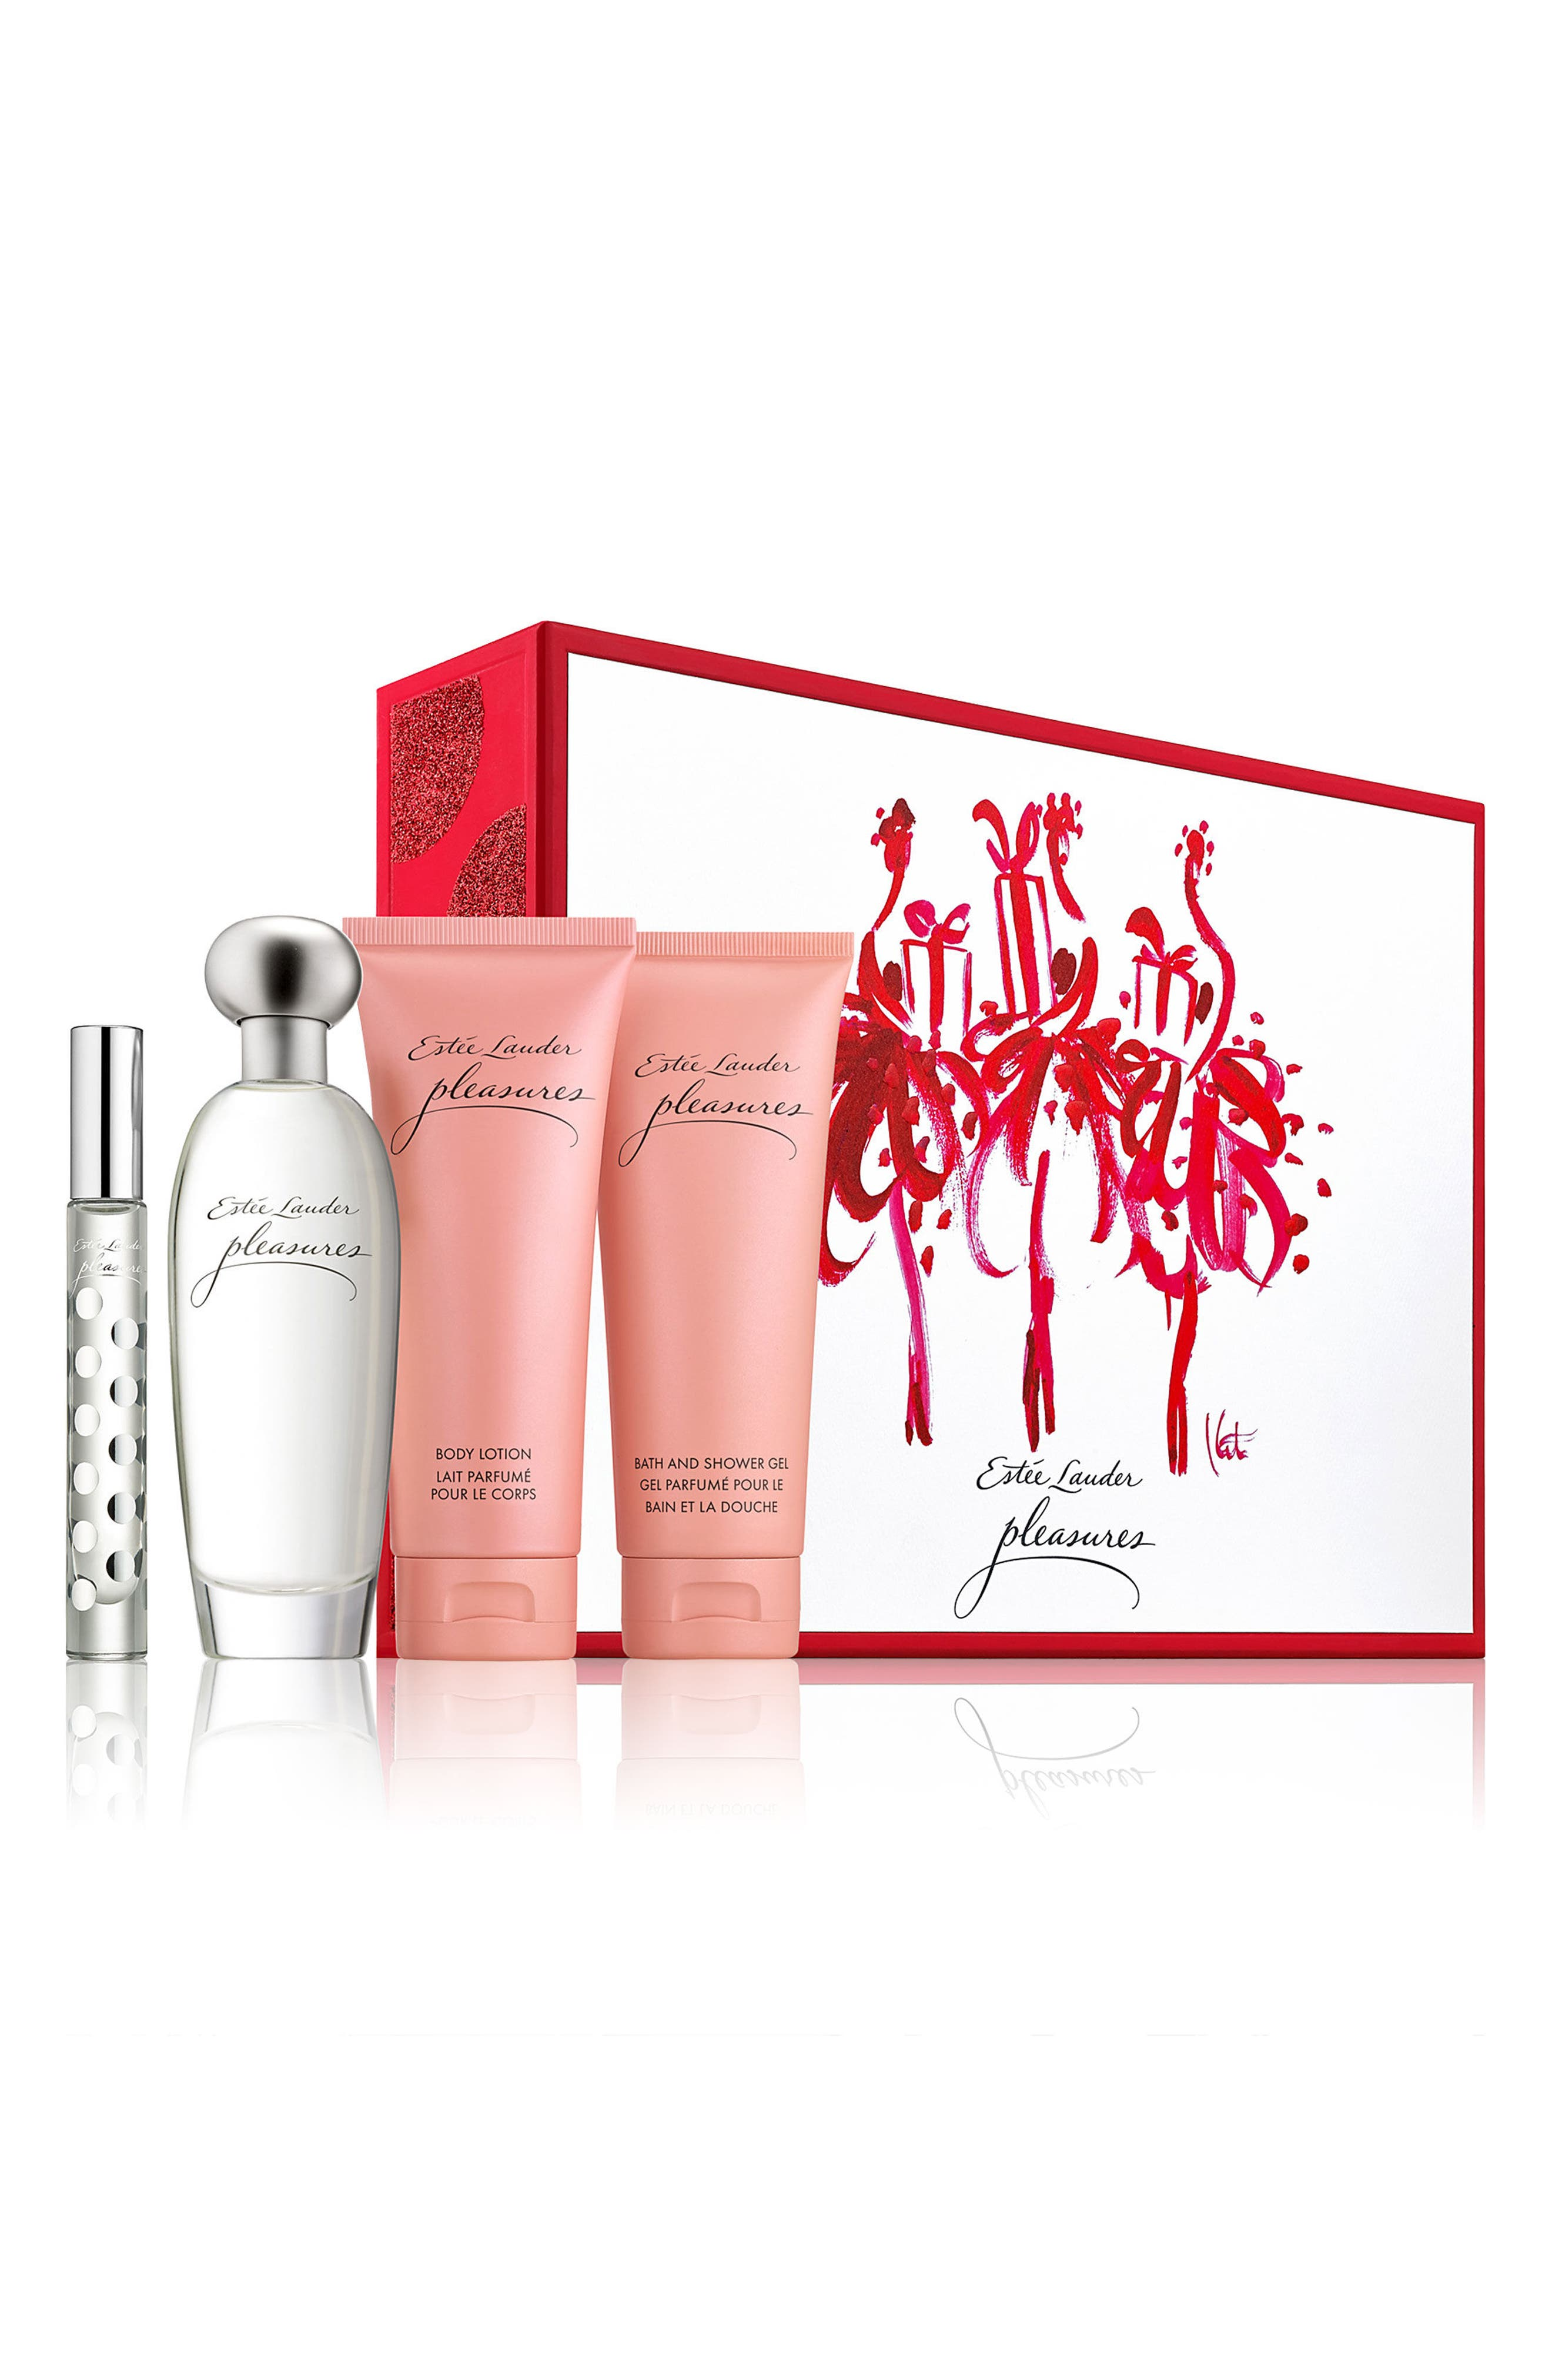 Estée Lauder pleasures Favorite Destination Collection ($165 Value)